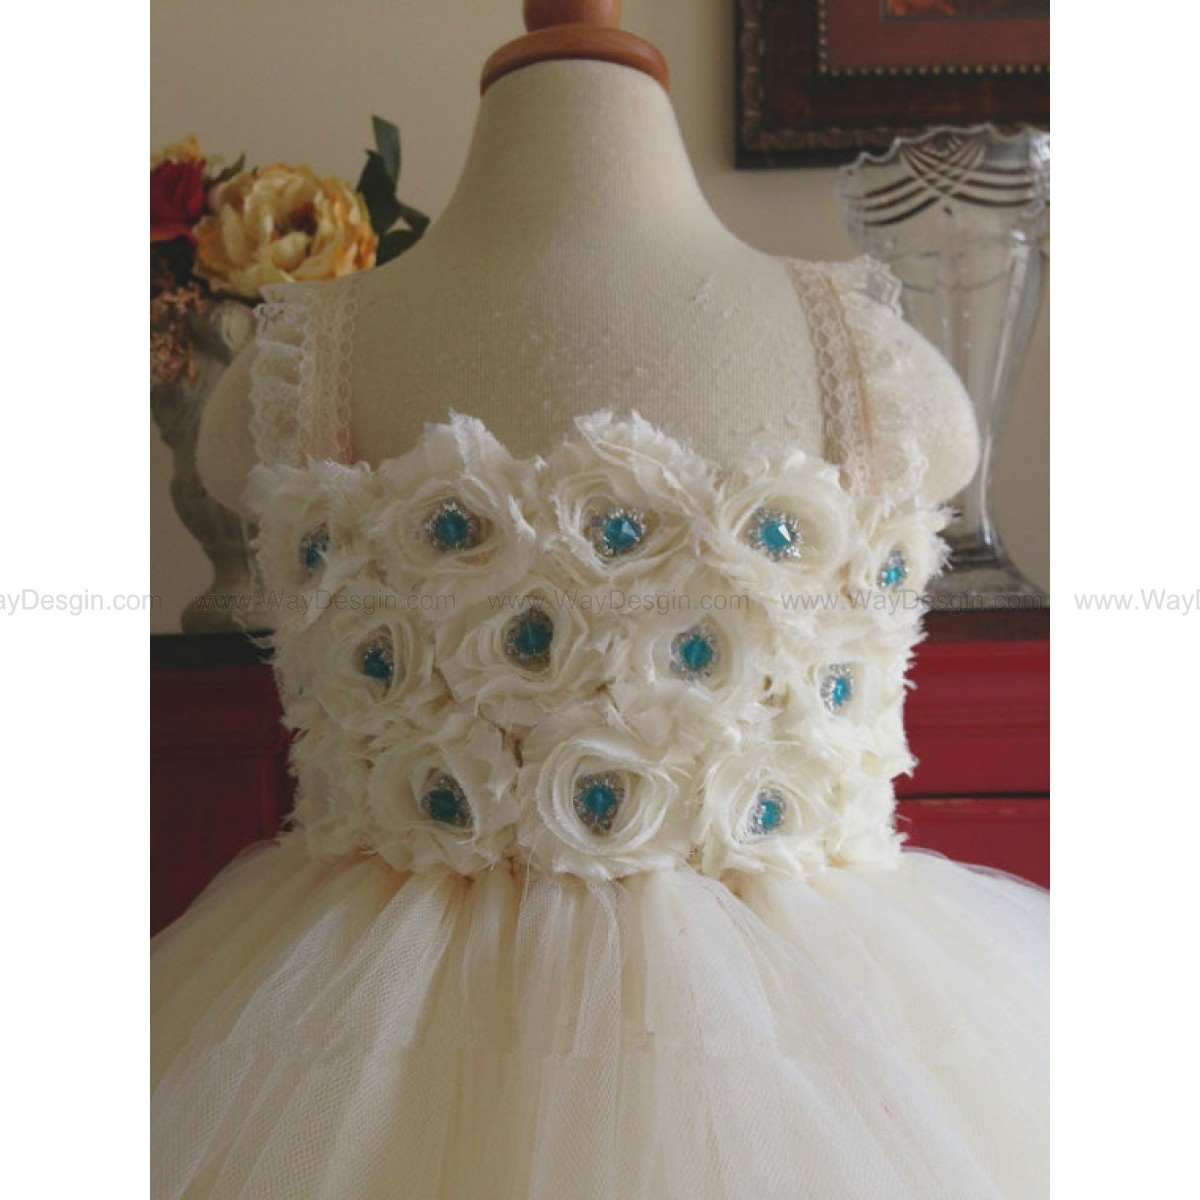 Flower girl dress tutu dress ivory, ivory, turquoise chiffton roses, baby tutu dress, toddler tutu dress